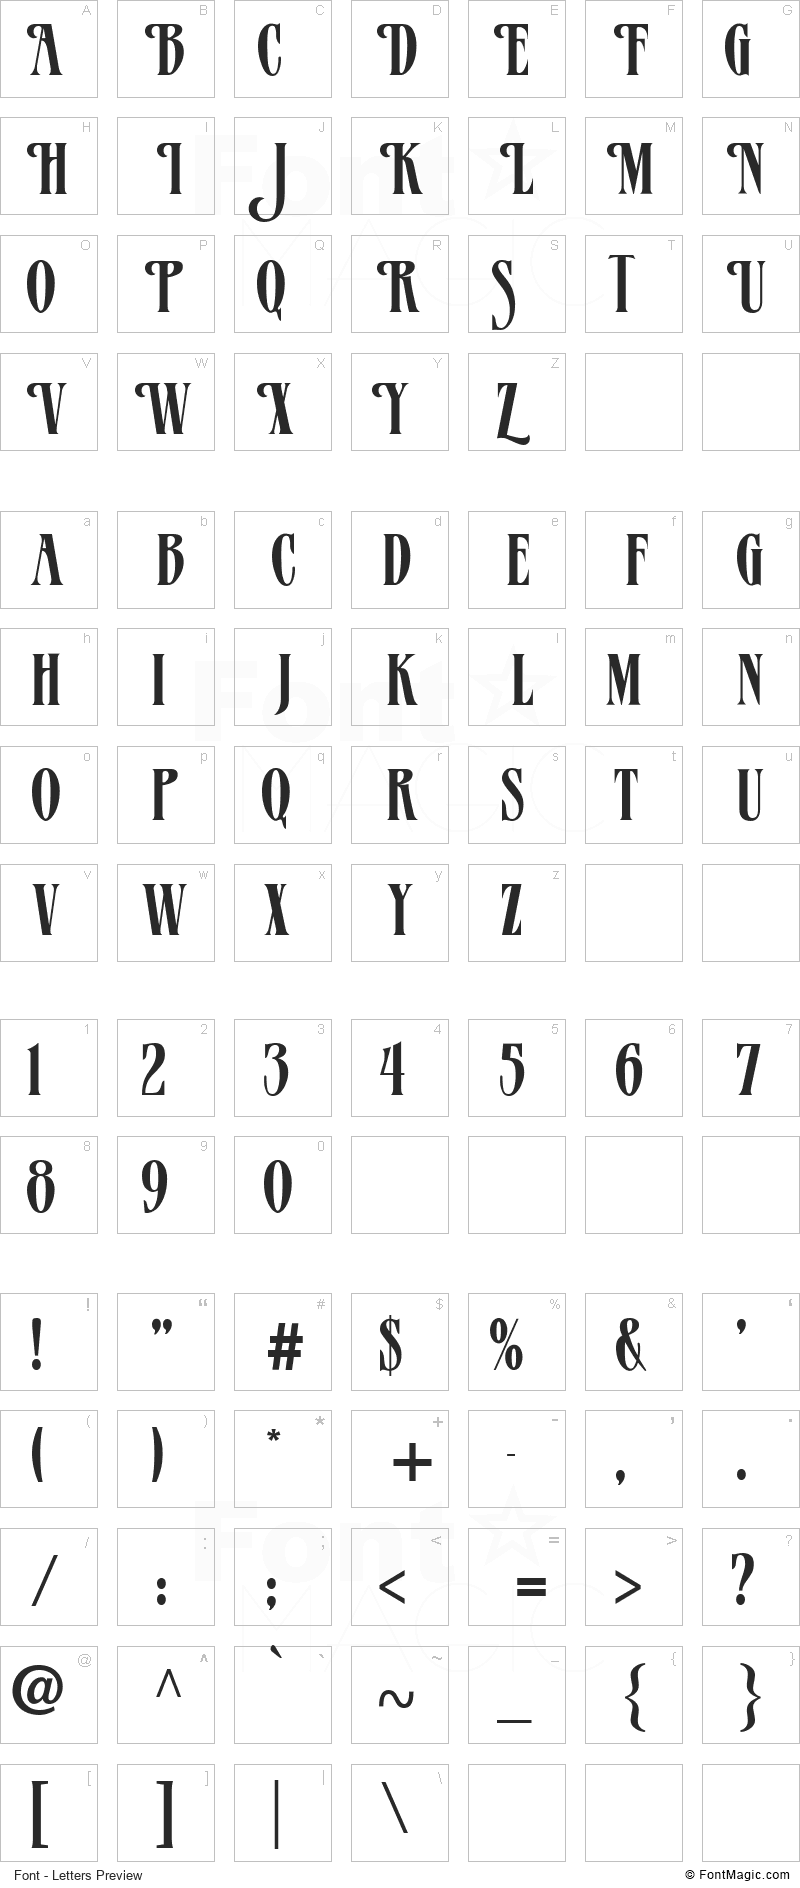 Verve Font - All Latters Preview Chart